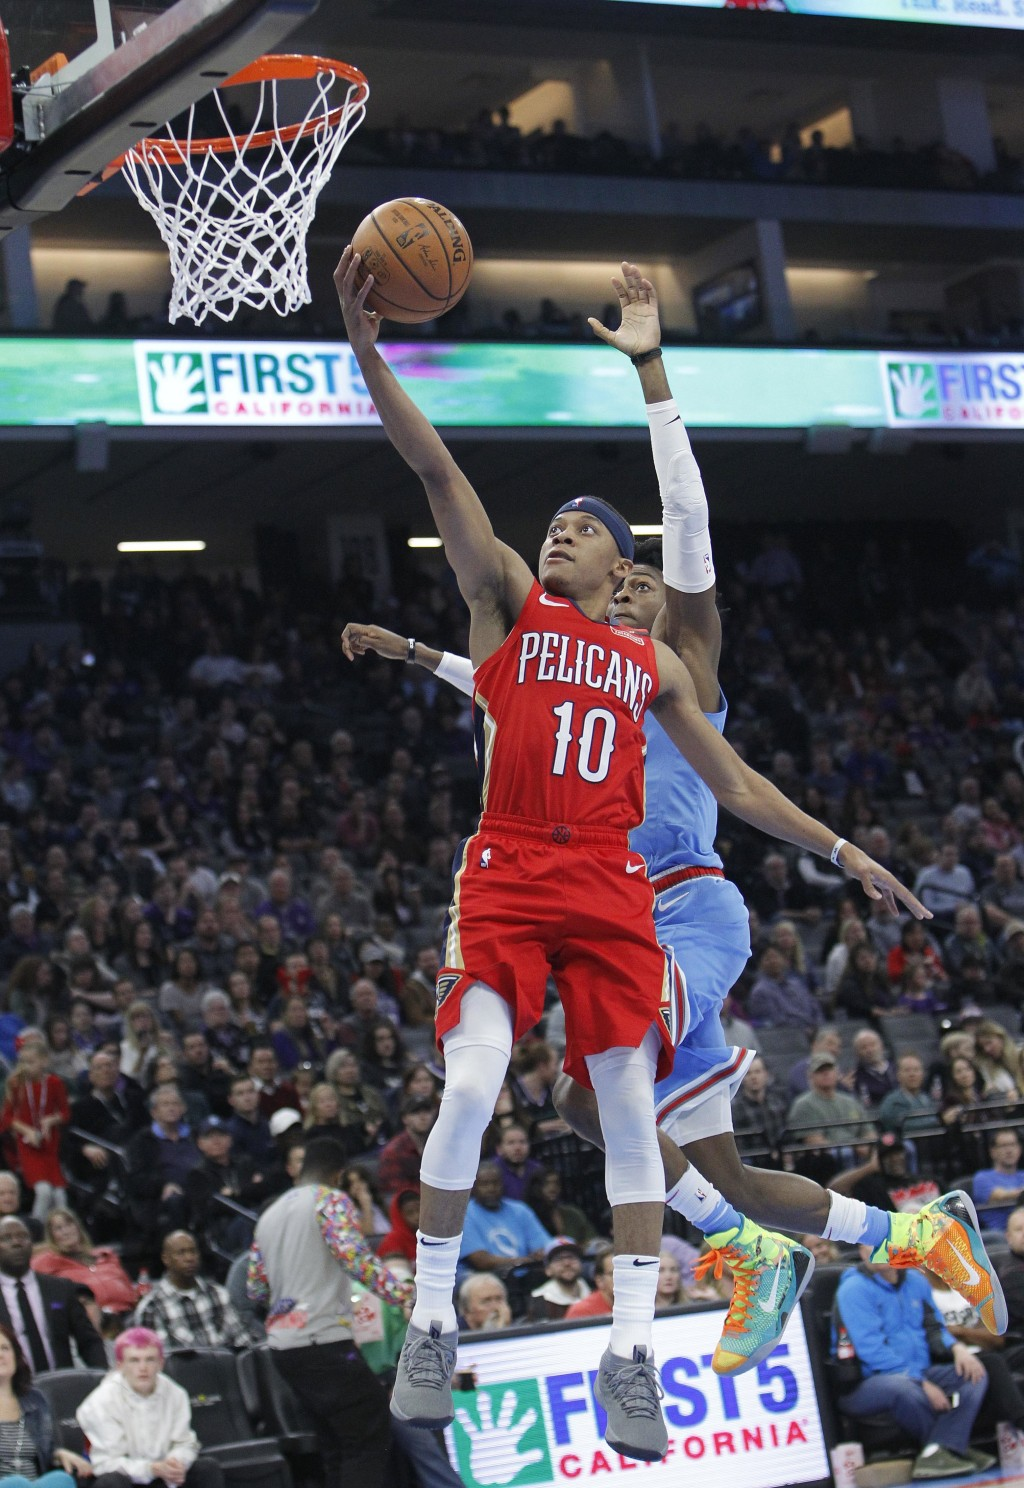 New Orleans Pelicans guard Tim Frazier (10) drives to the basket only to have his shot blocked by Sacramento Kings guard De'Aaron Fox (5) during the f